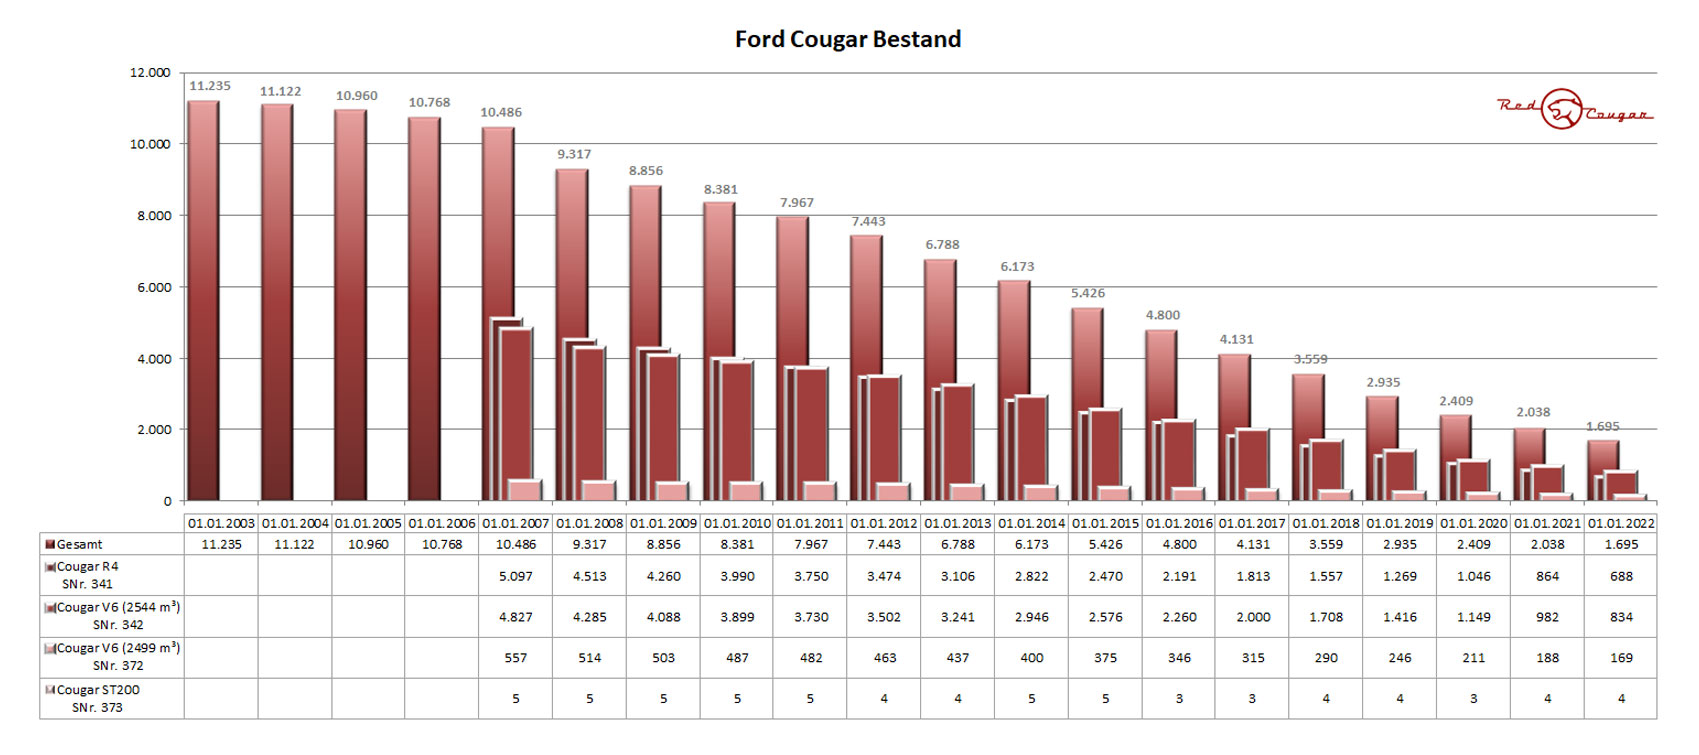 ford cougar bestand